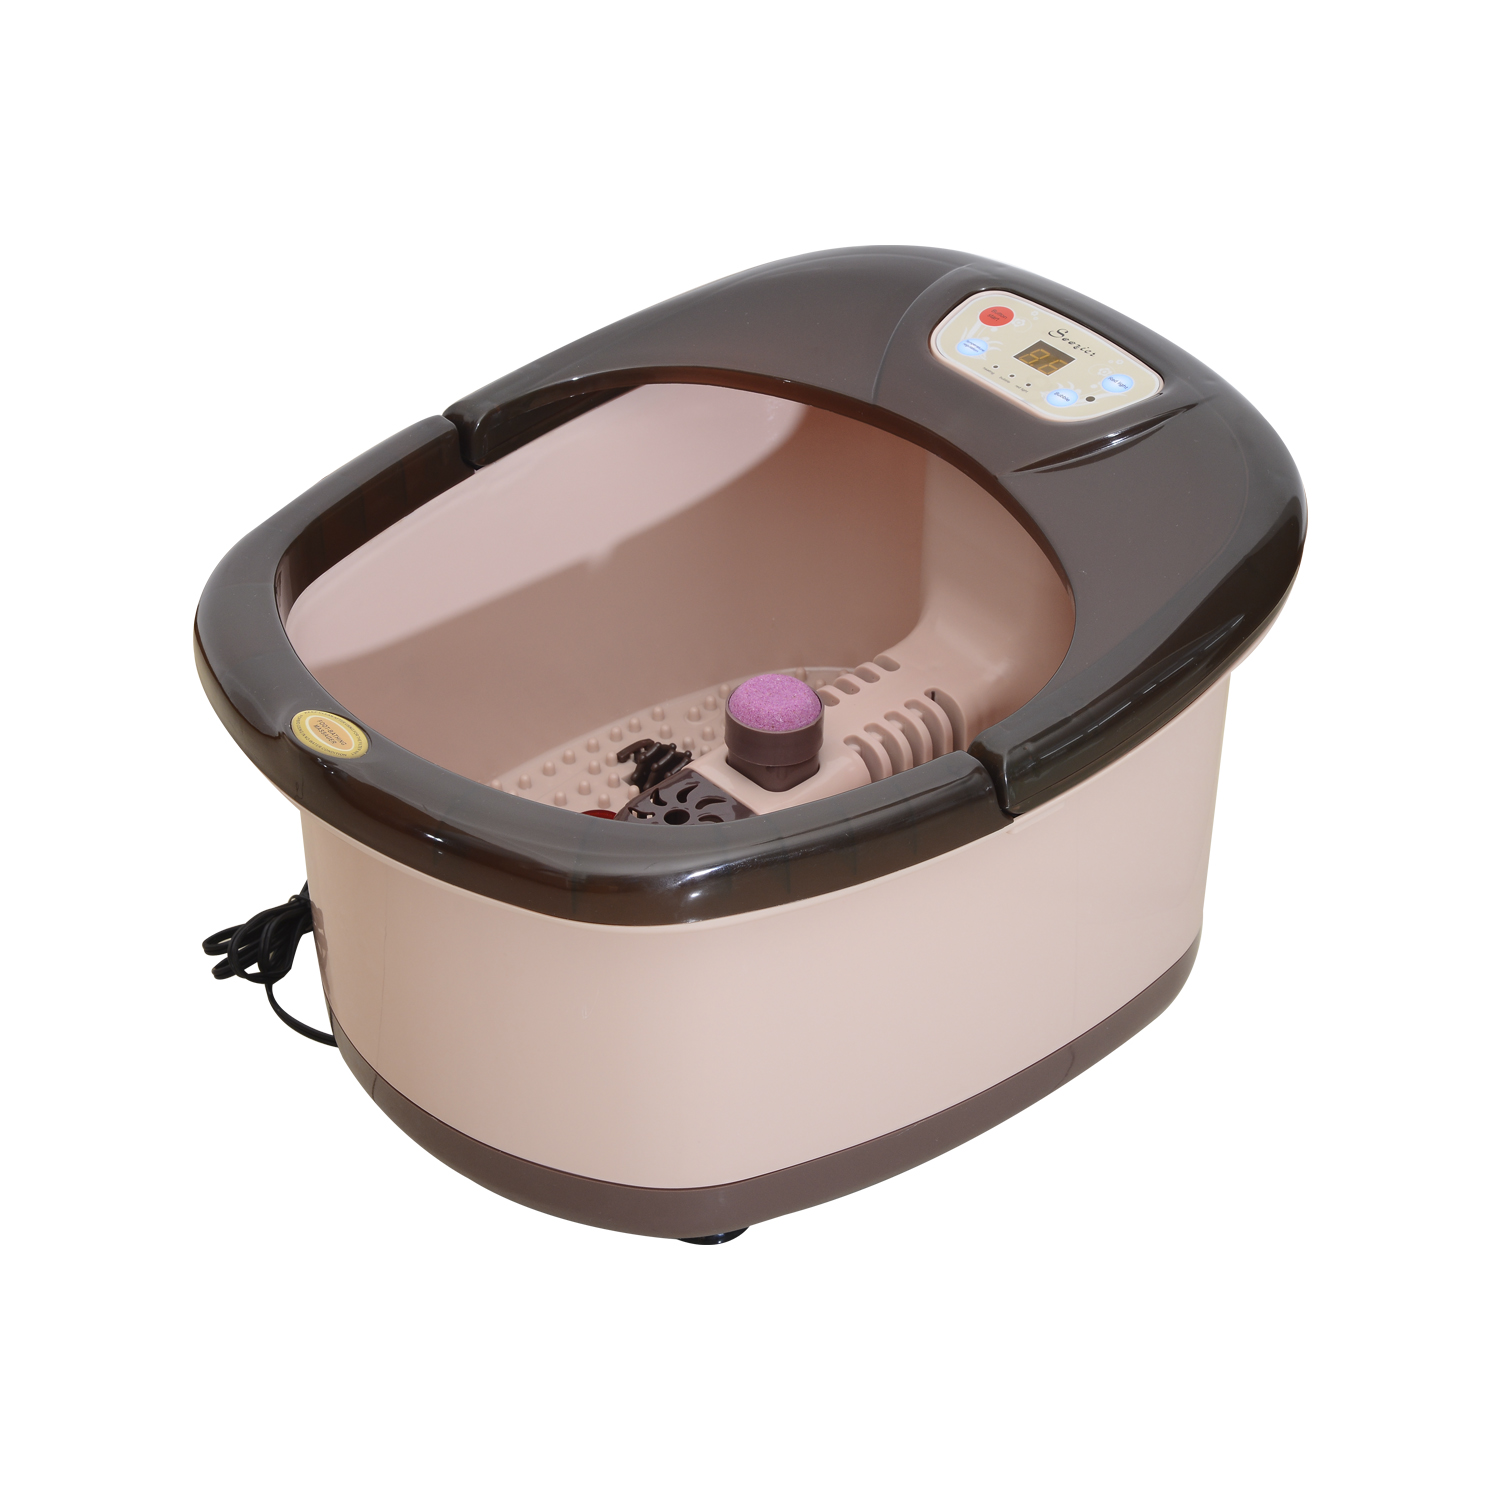 Soozier Foot Bath Spa - Beige and Brown